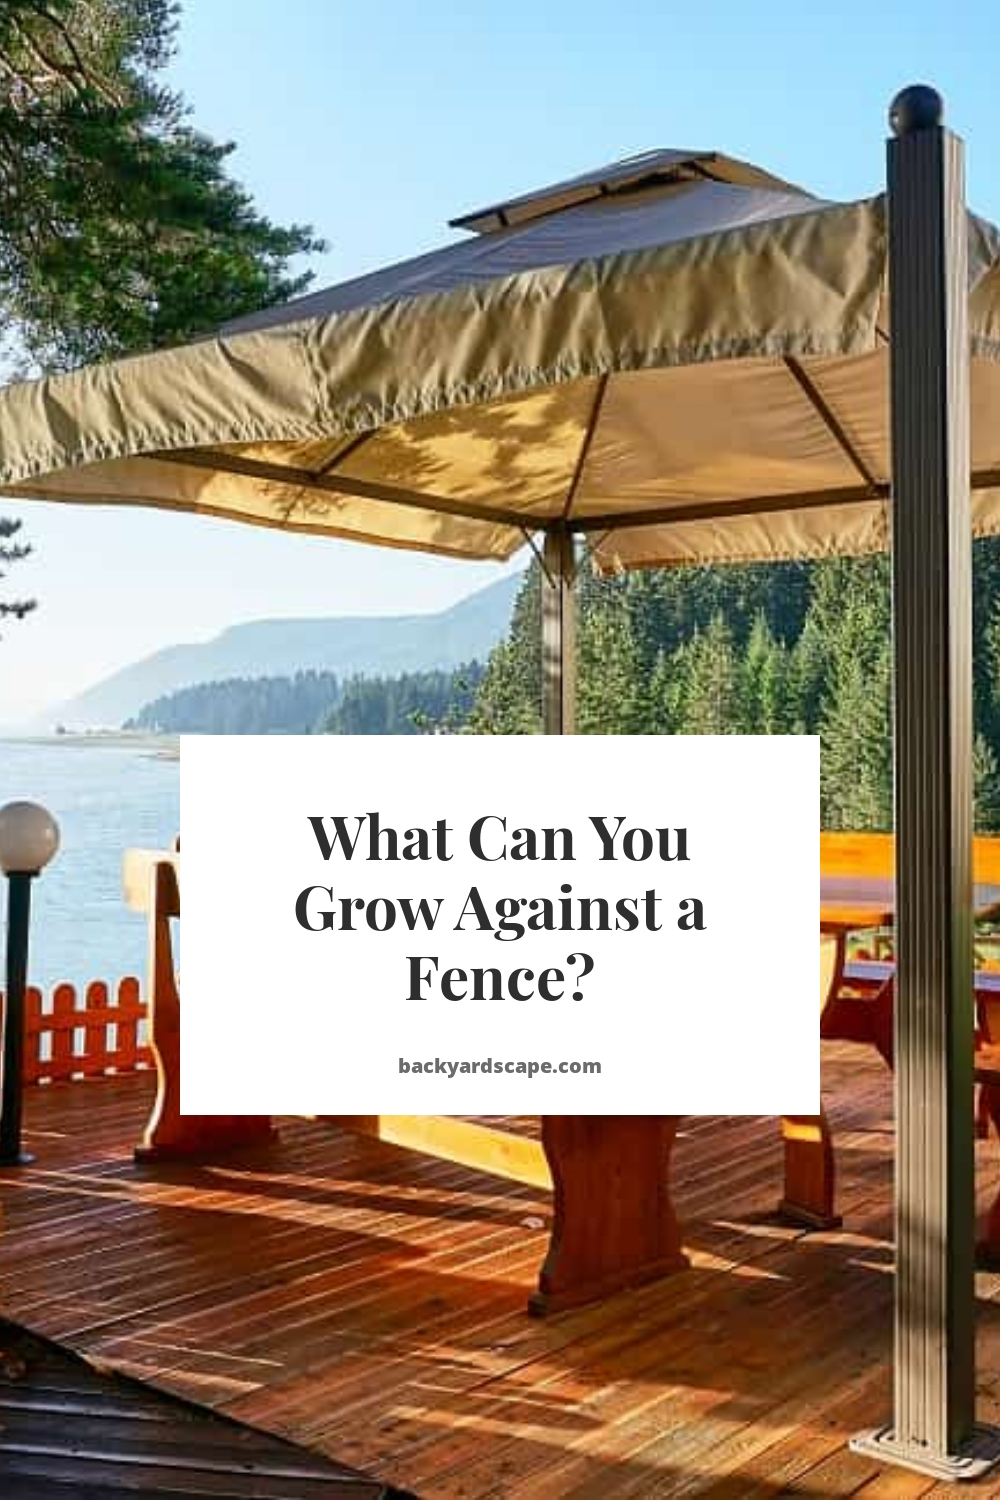 What Can You Grow Against a Fence?